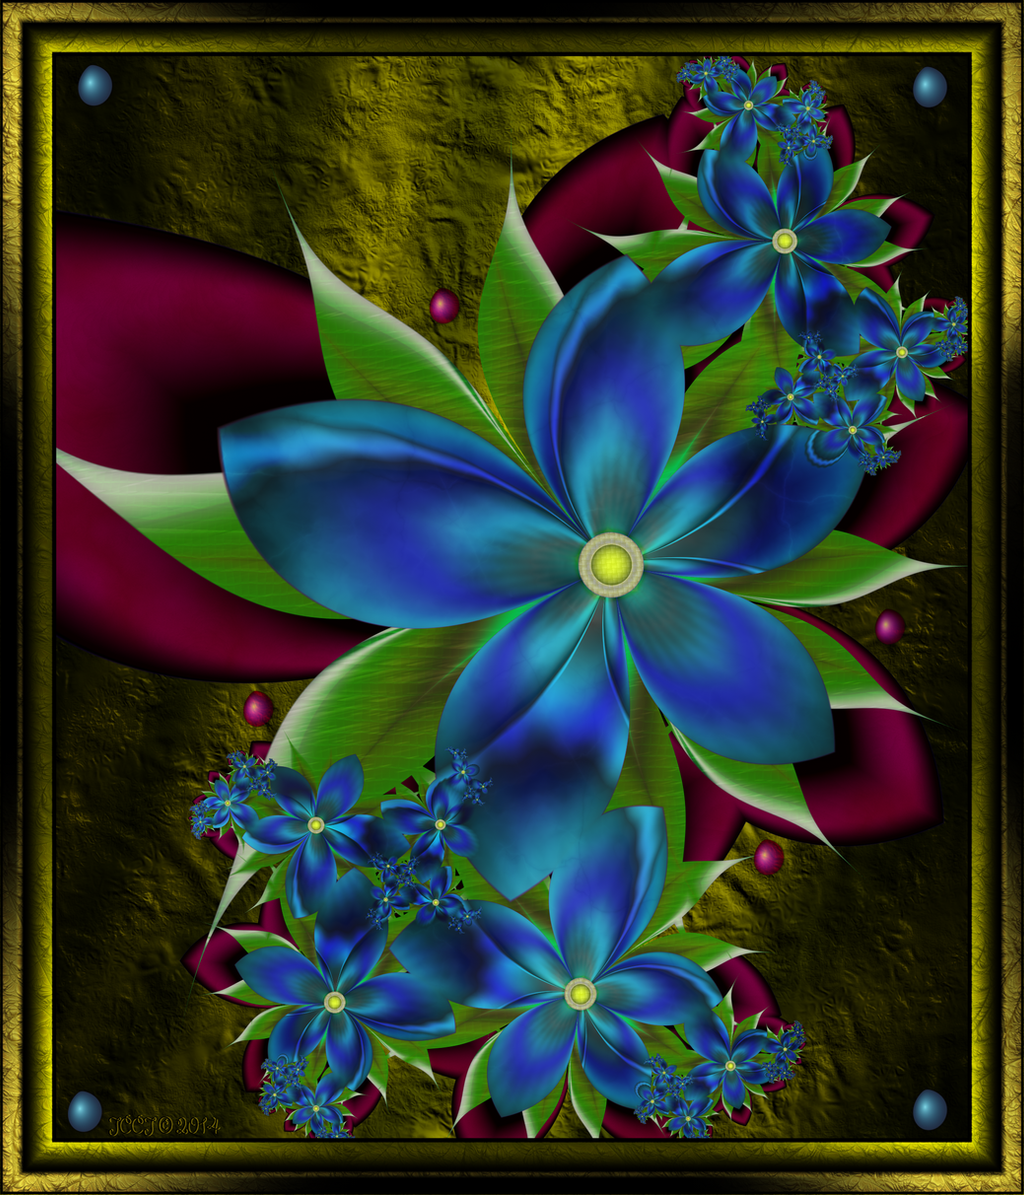 Blue Flowers 1  2014 by JCCJ756